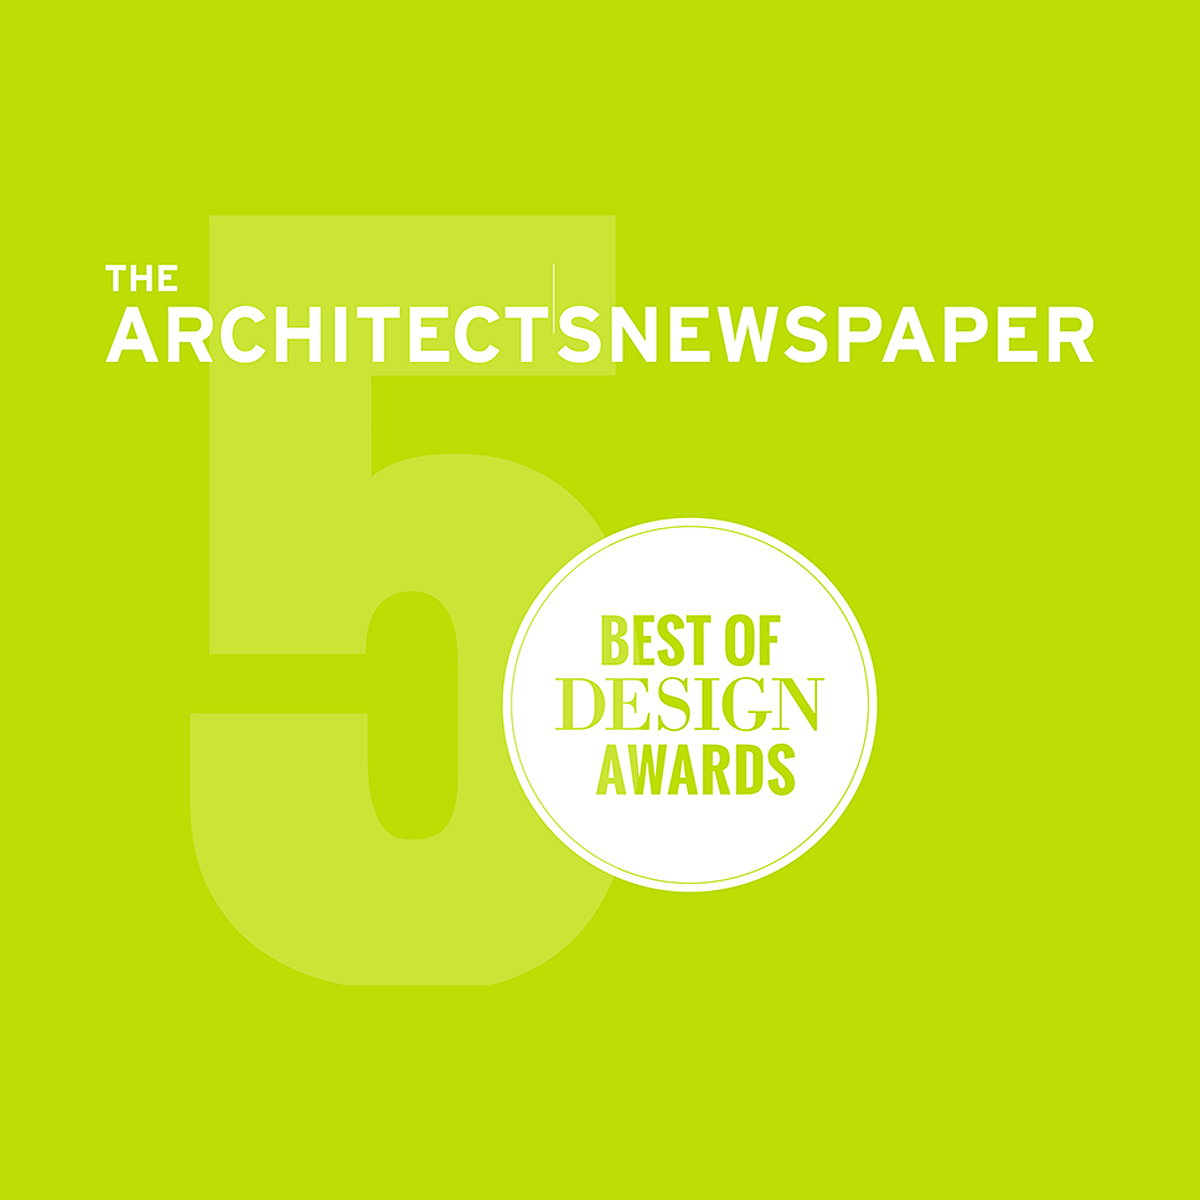 The Architect's Newspaper 2017 Best of Design Awards